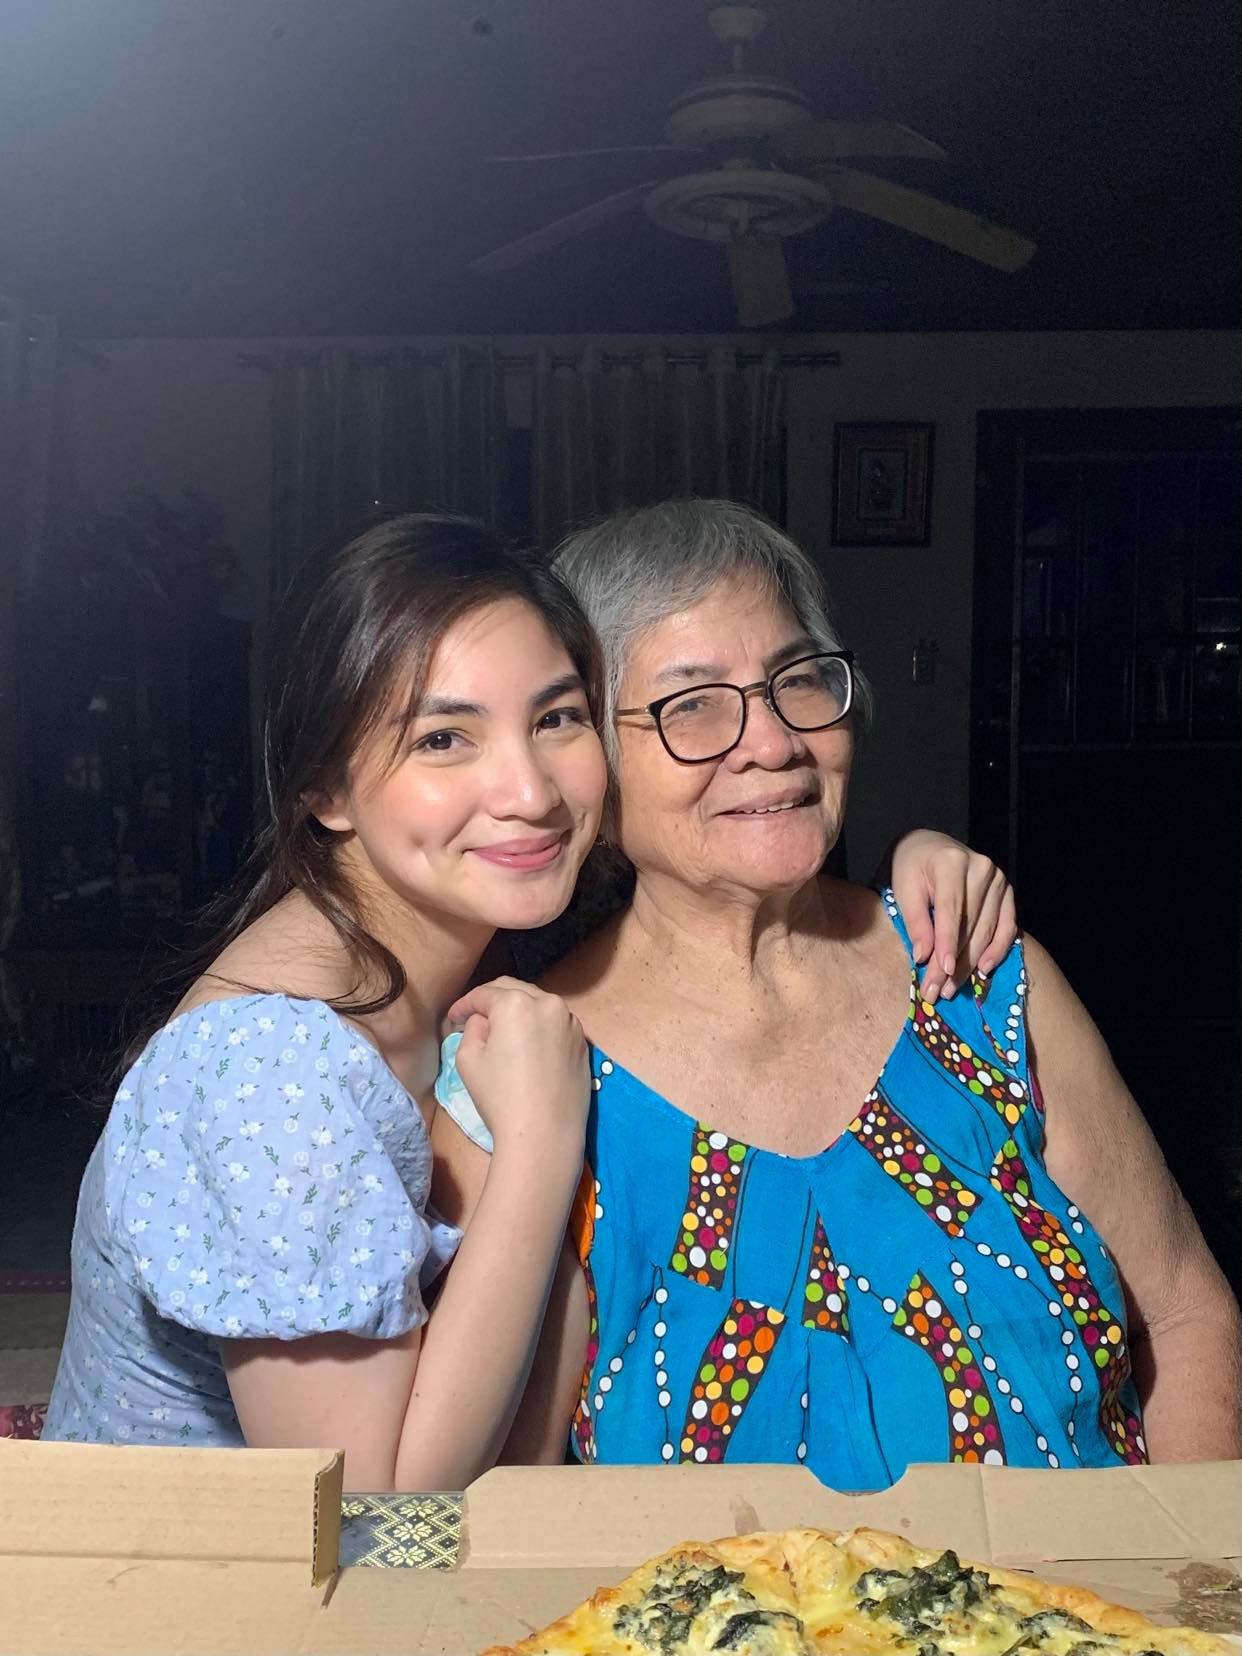 Family photo of a Pinay and her lola - Roselle